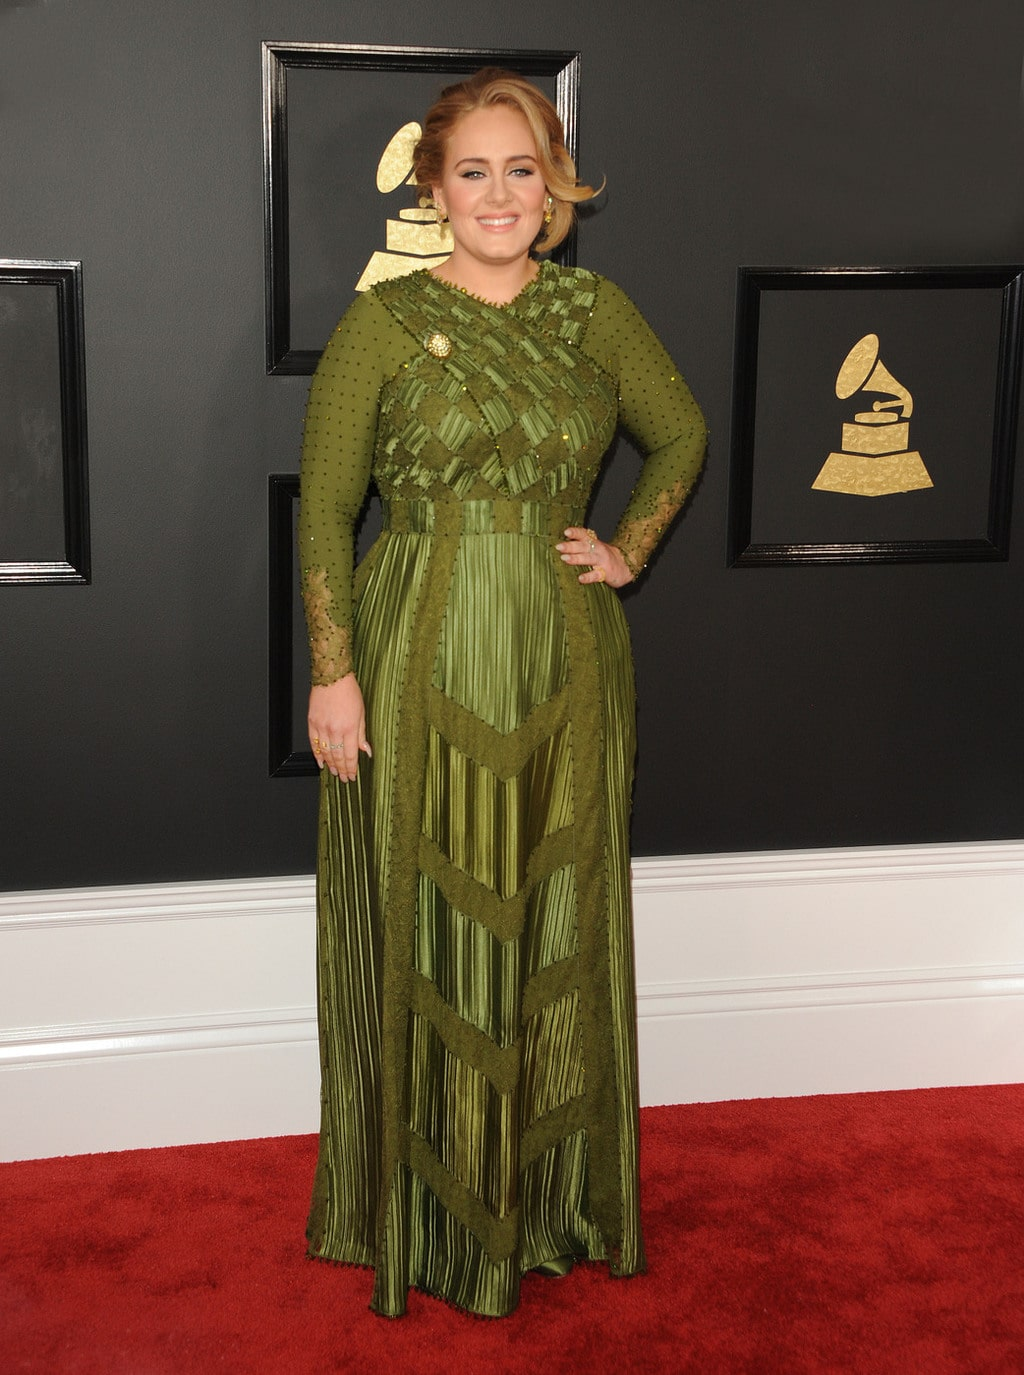 Adele in Givenchy Haute Couture green gown at the 2017 Grammy Awards